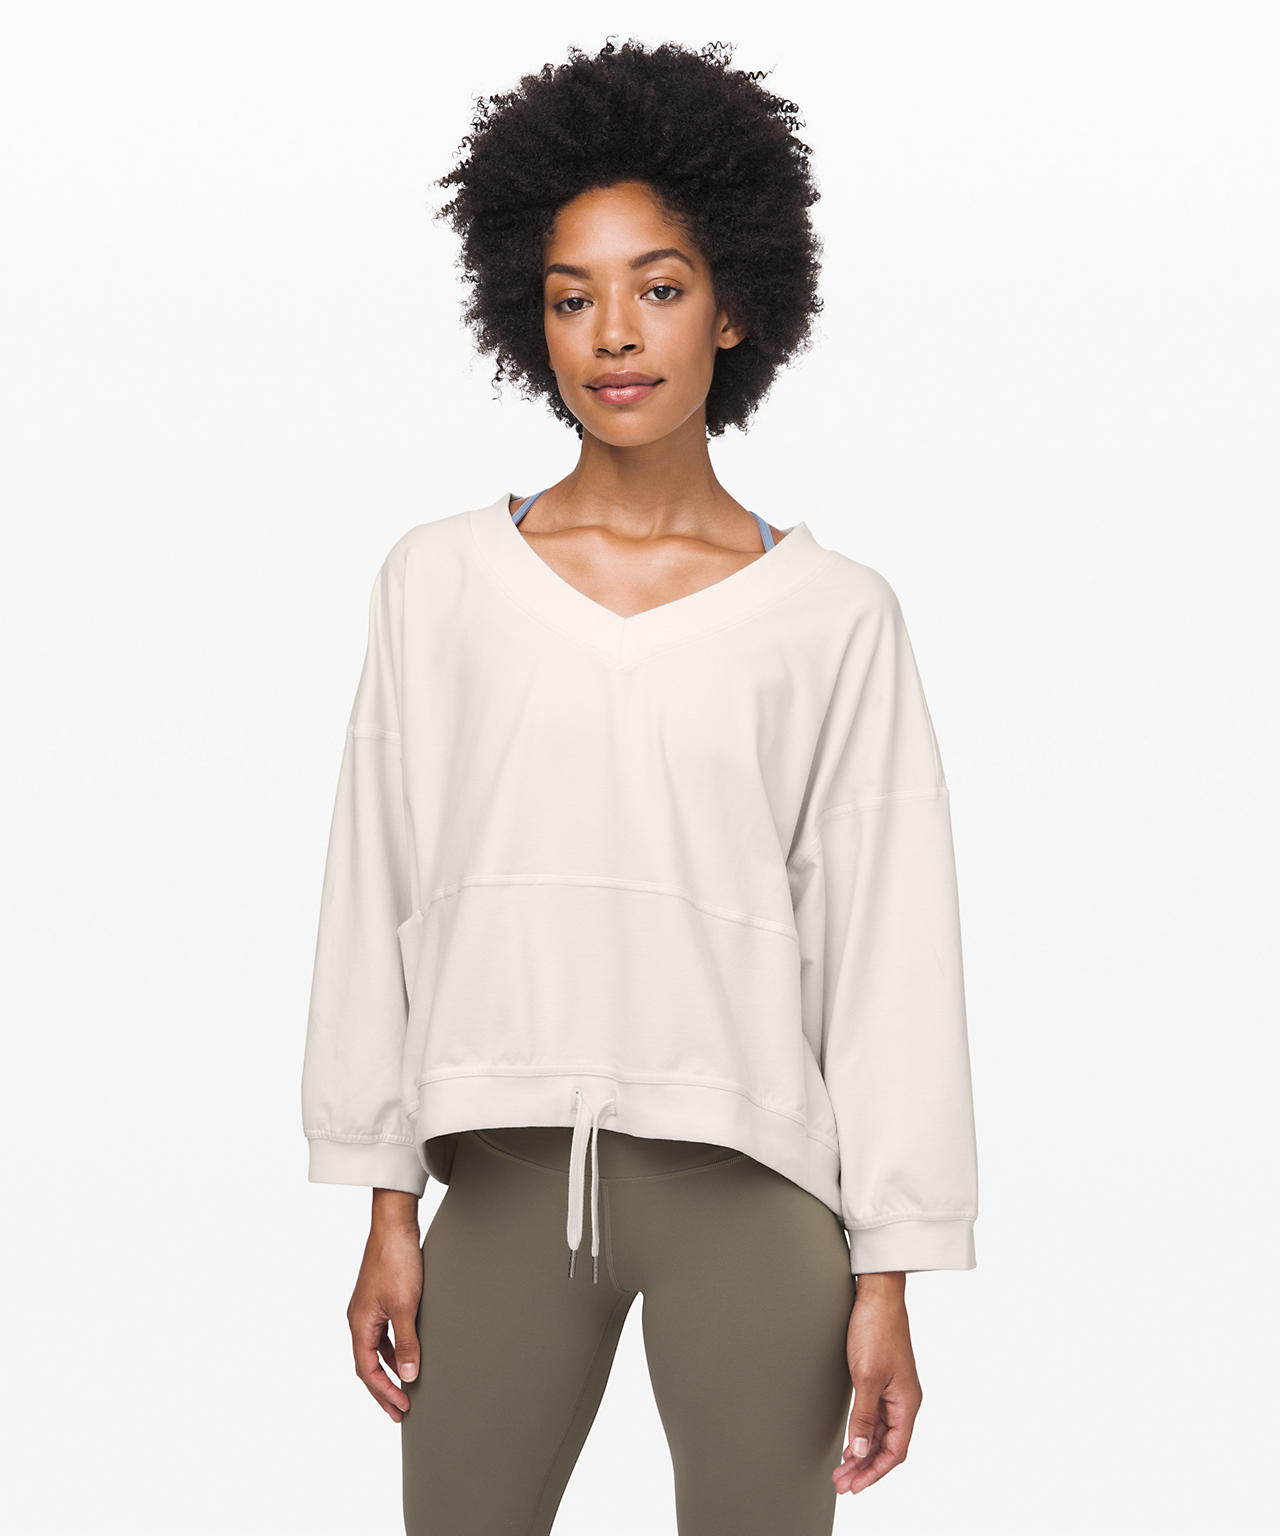 Dare The Day Pullover, Lululemon Upload